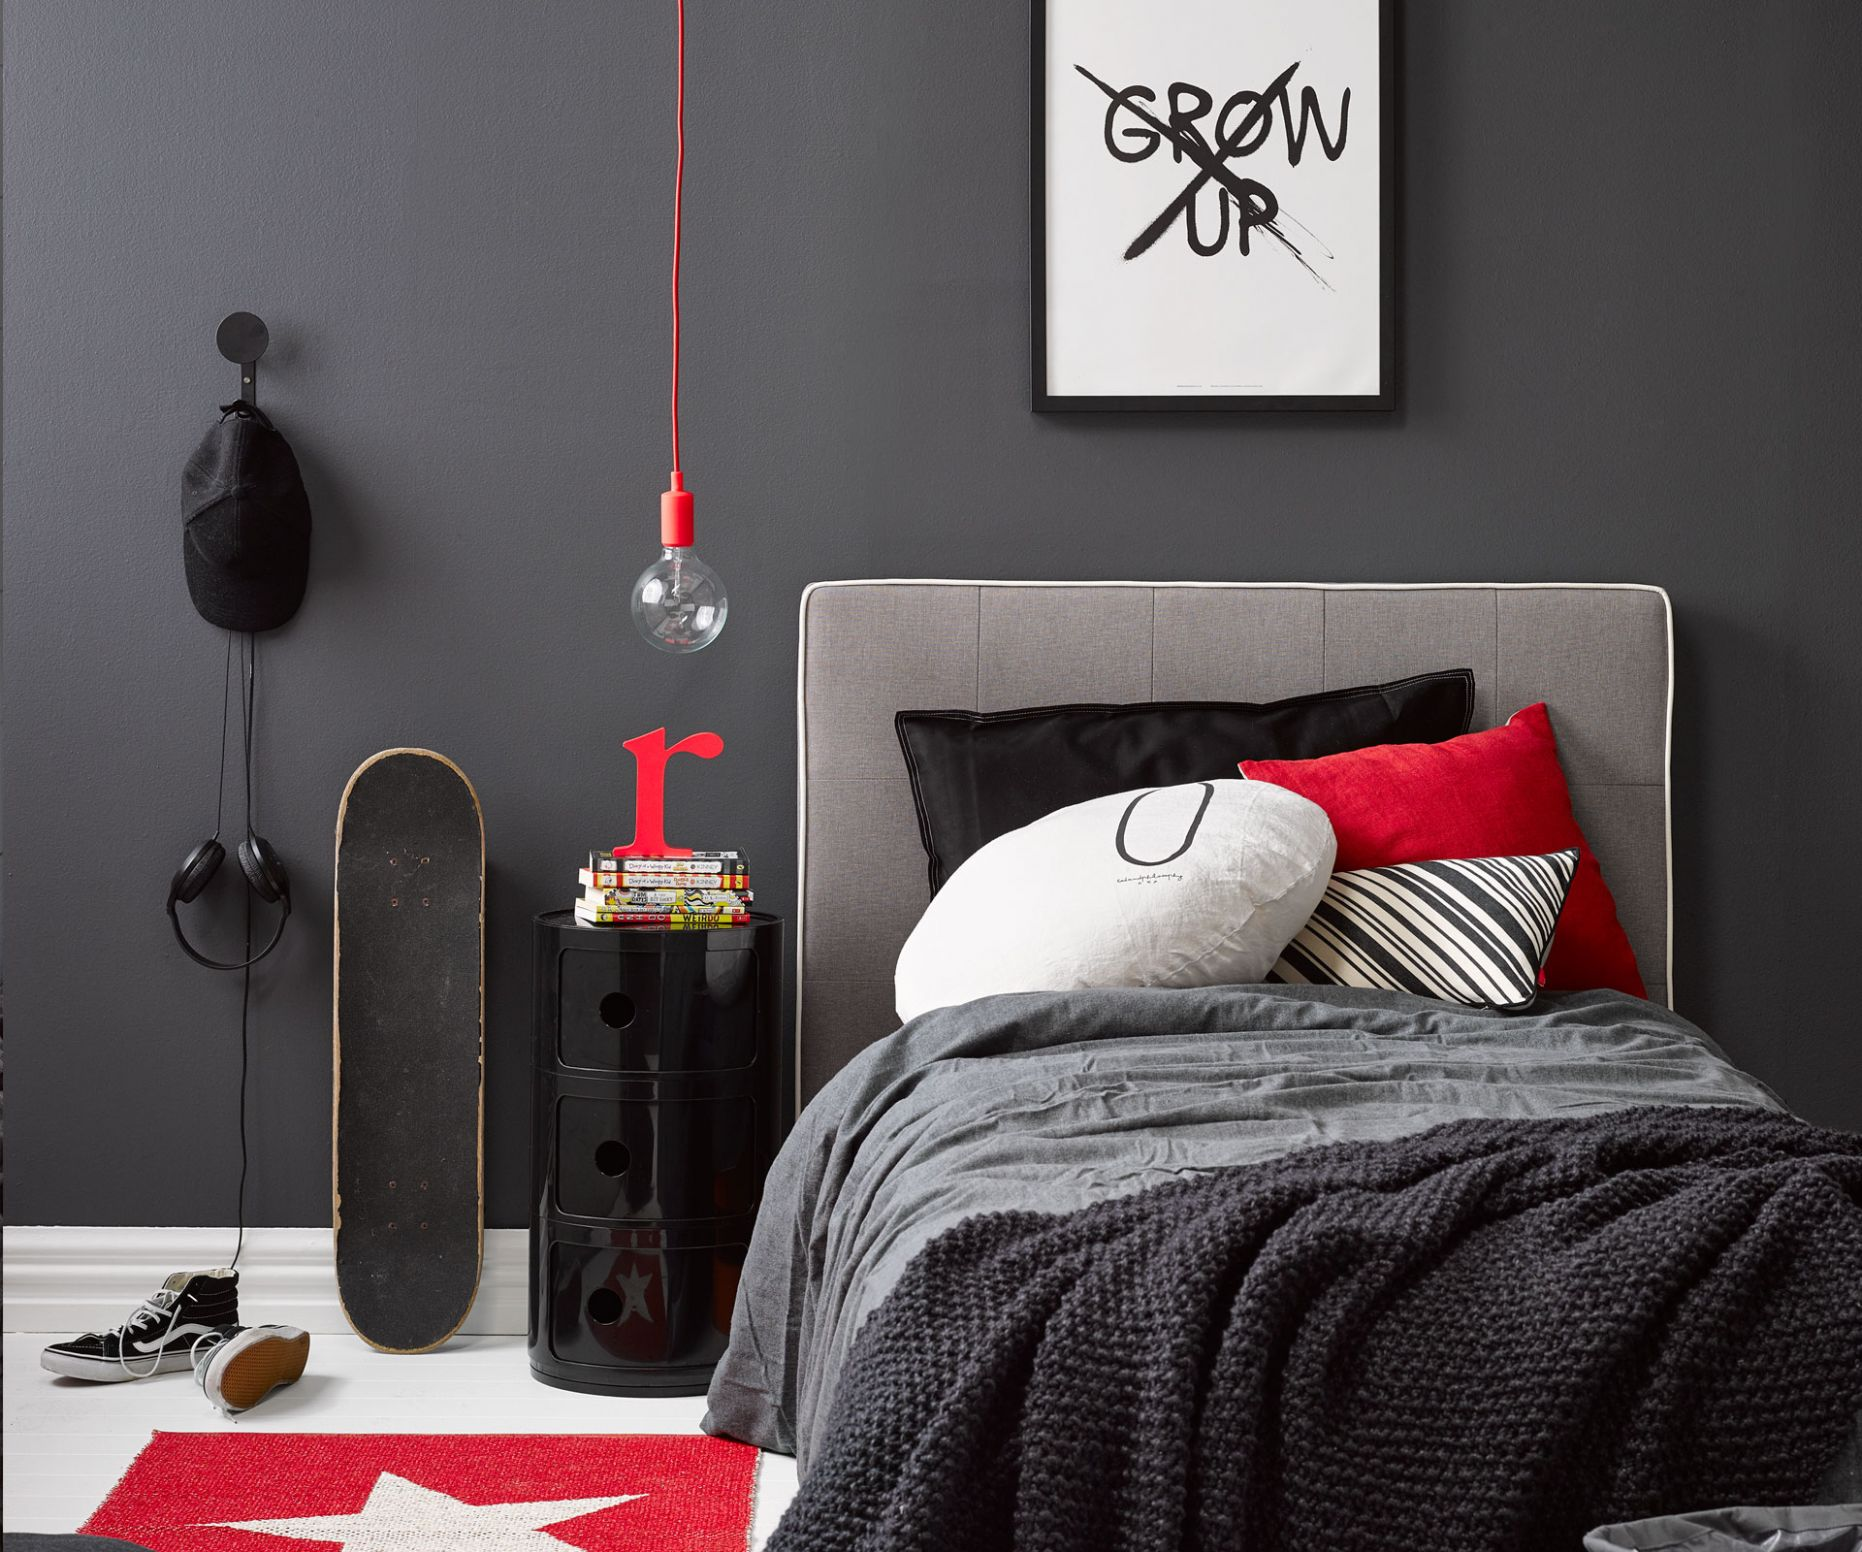 Kid's bedroom ideas: A dramatic monochrome room perfect for your teen